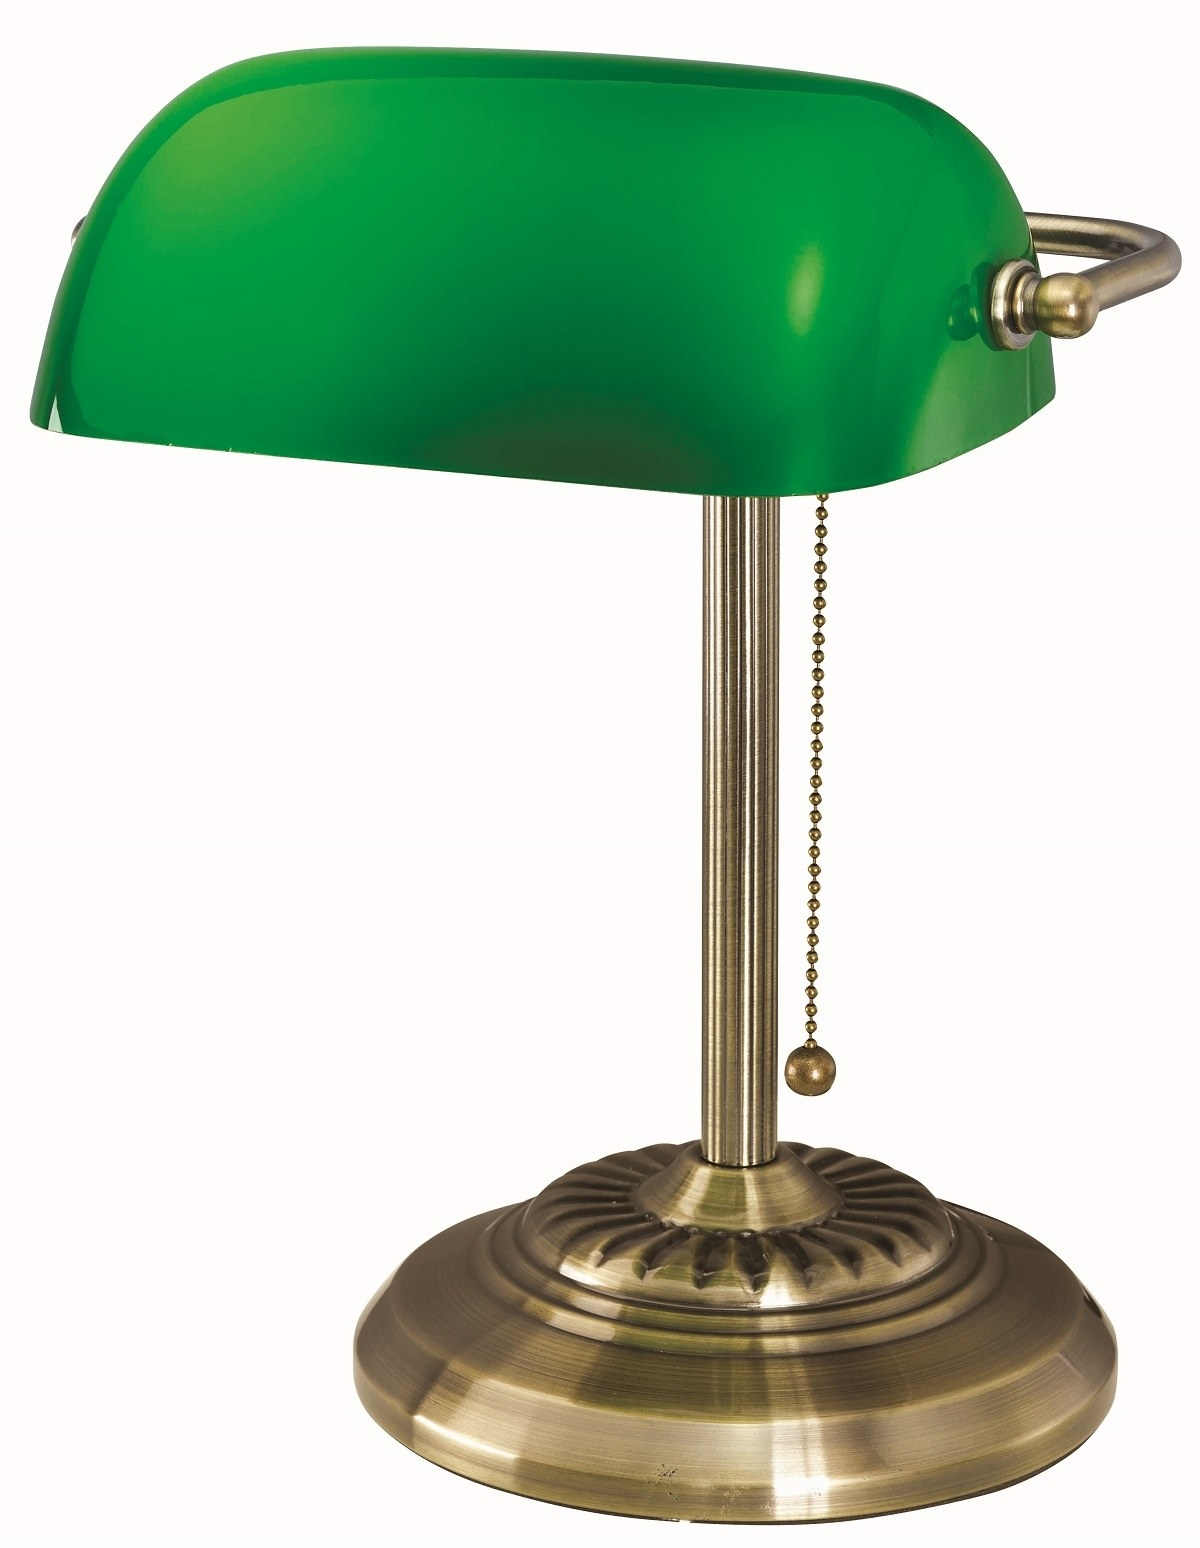 A classic green desk lamp with a brass stand